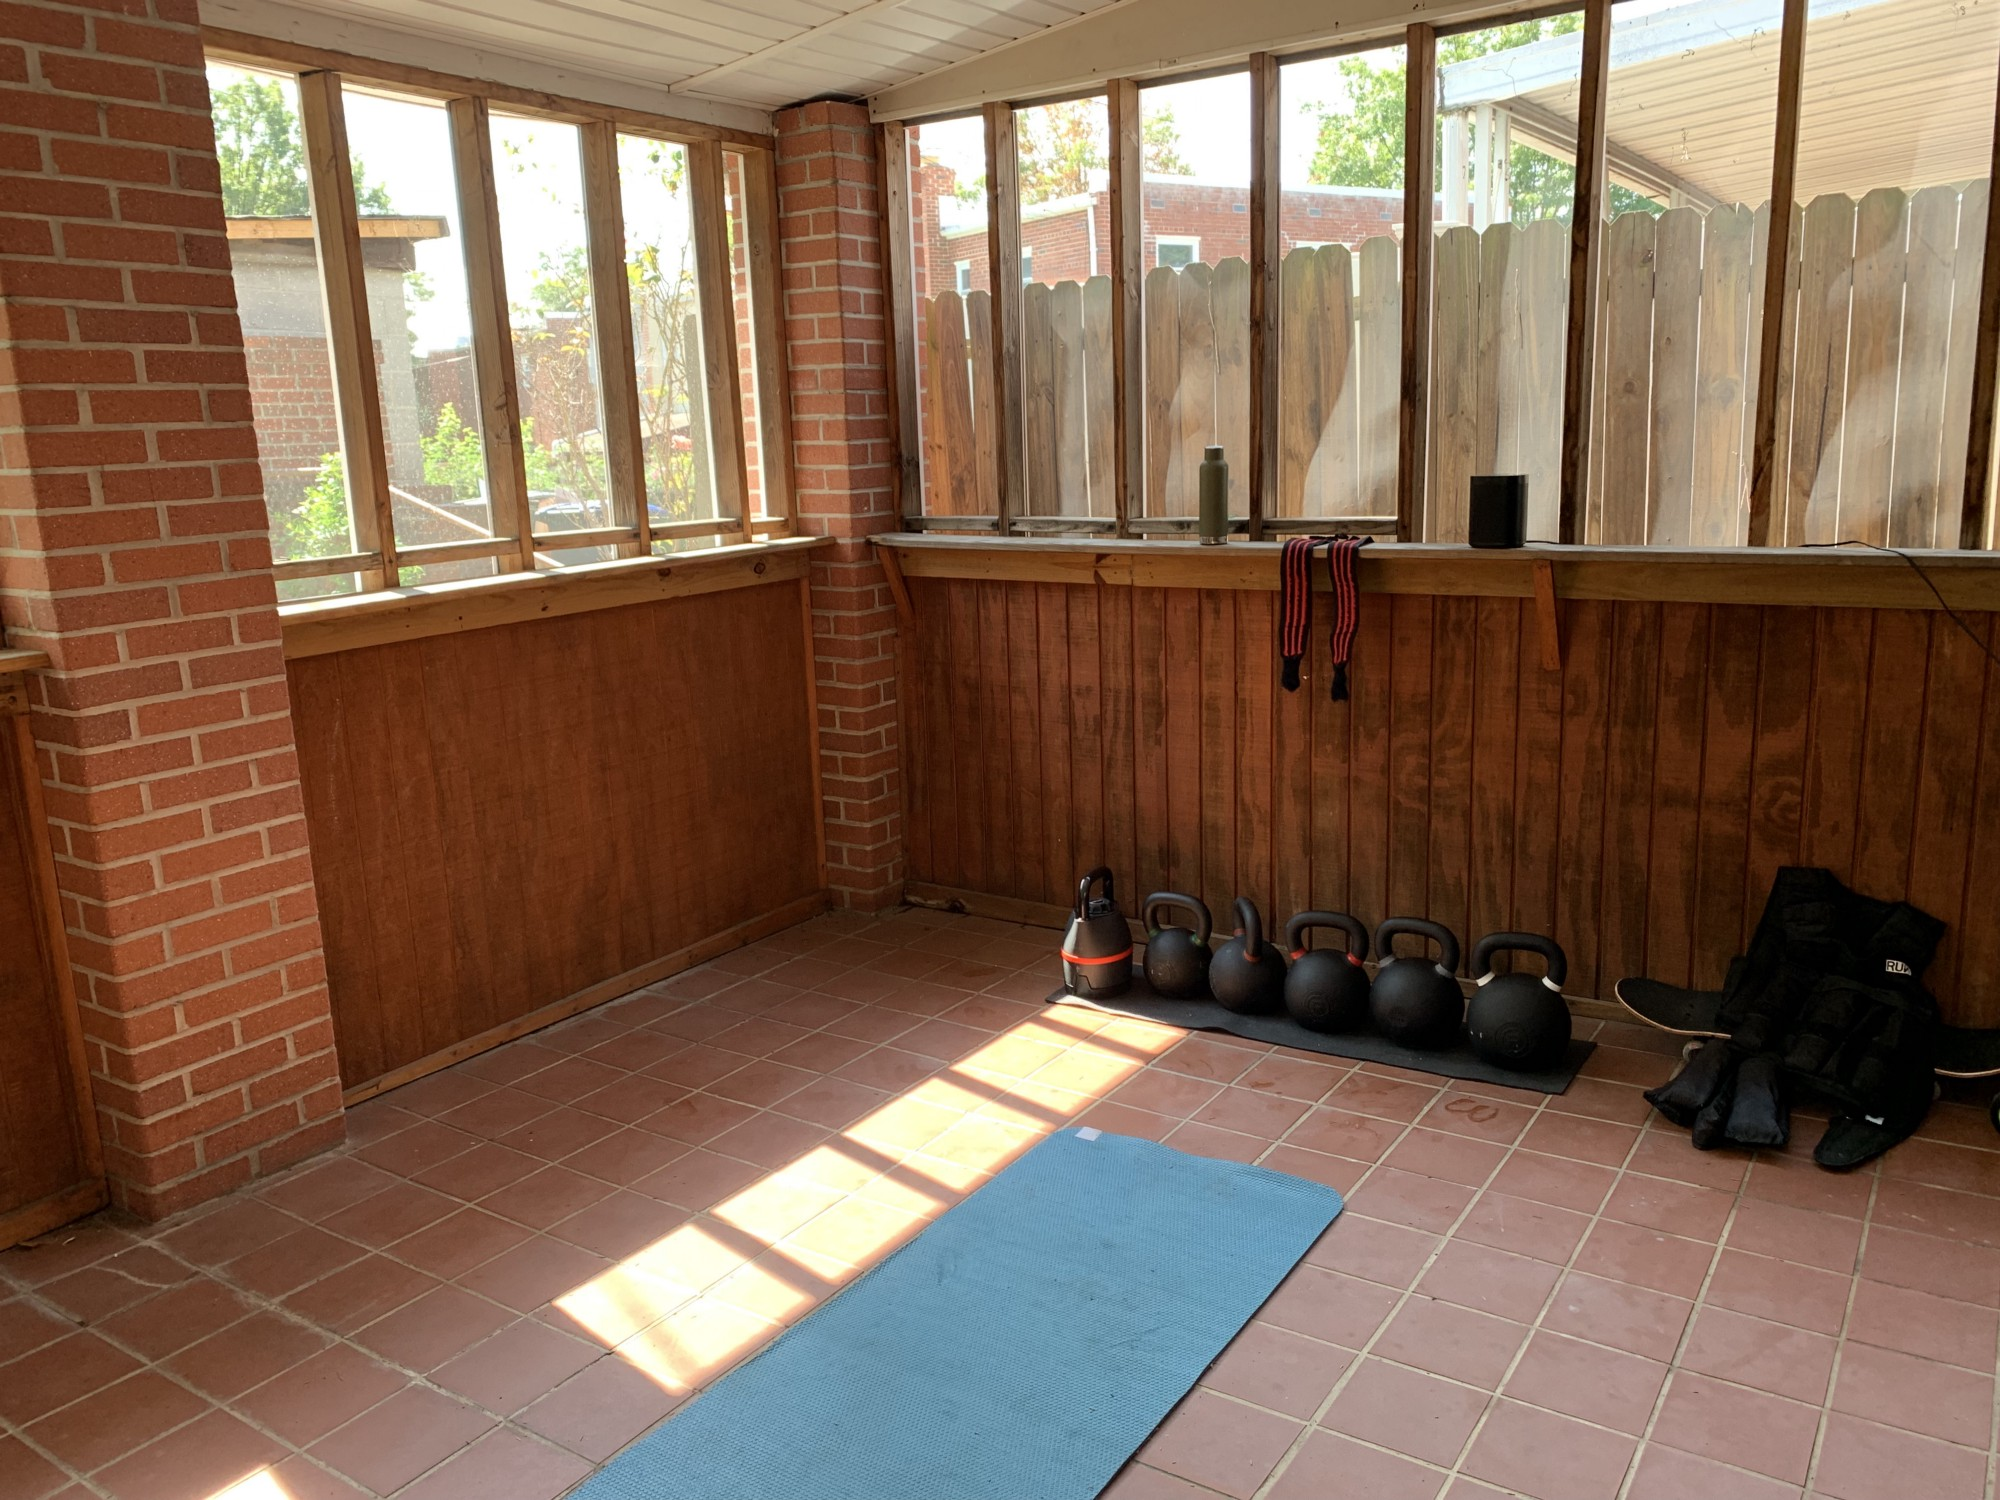 Picture of a three season porch with a yoga mat on the floor, a row of kettlebells next to it and other various fitness equipment around.